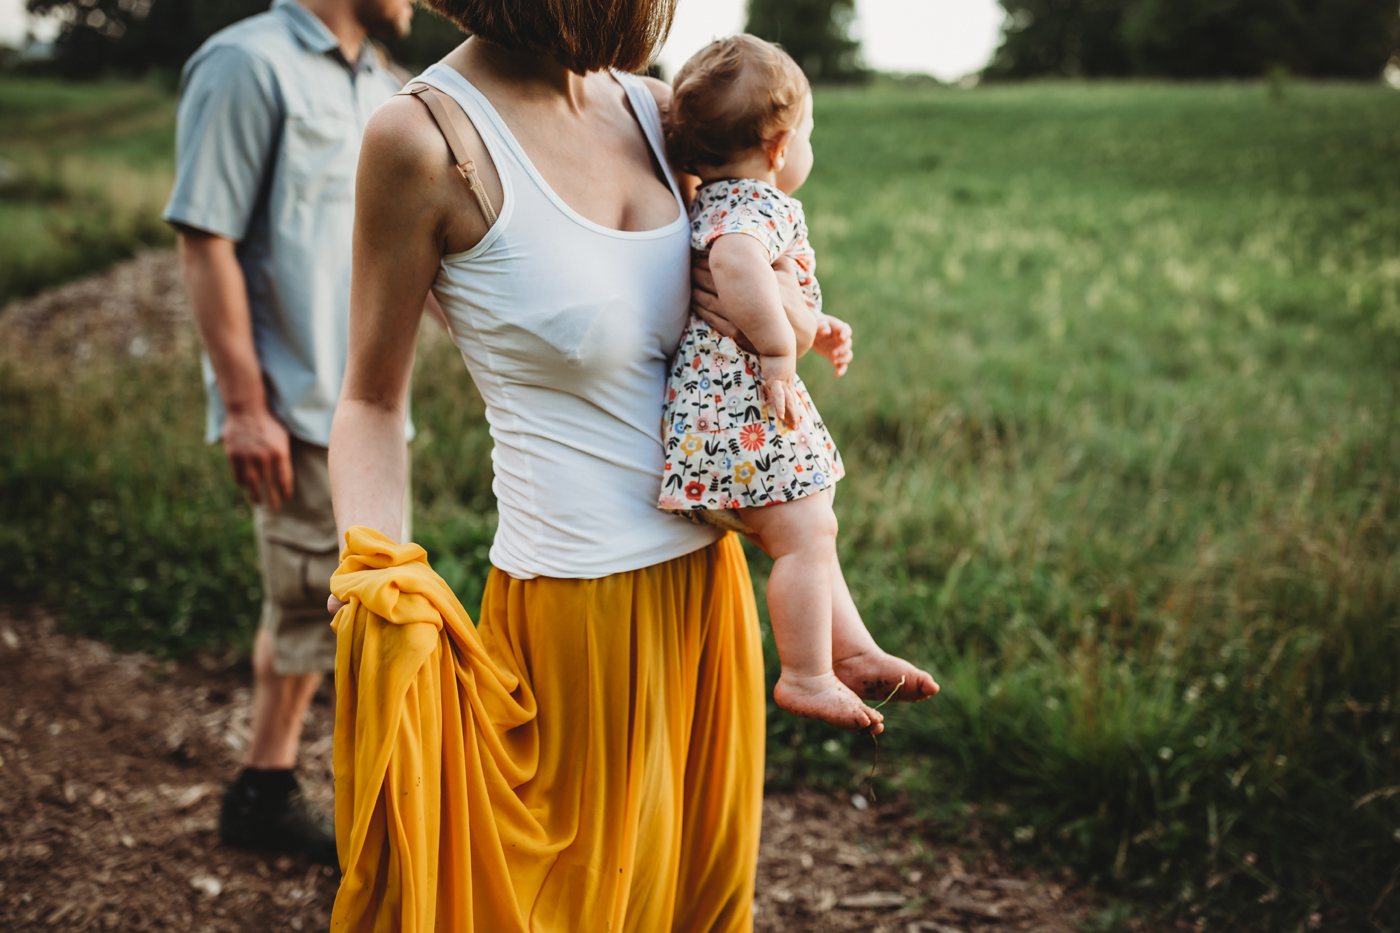 ChittumVestalA-RawMotherhood-Womanhood